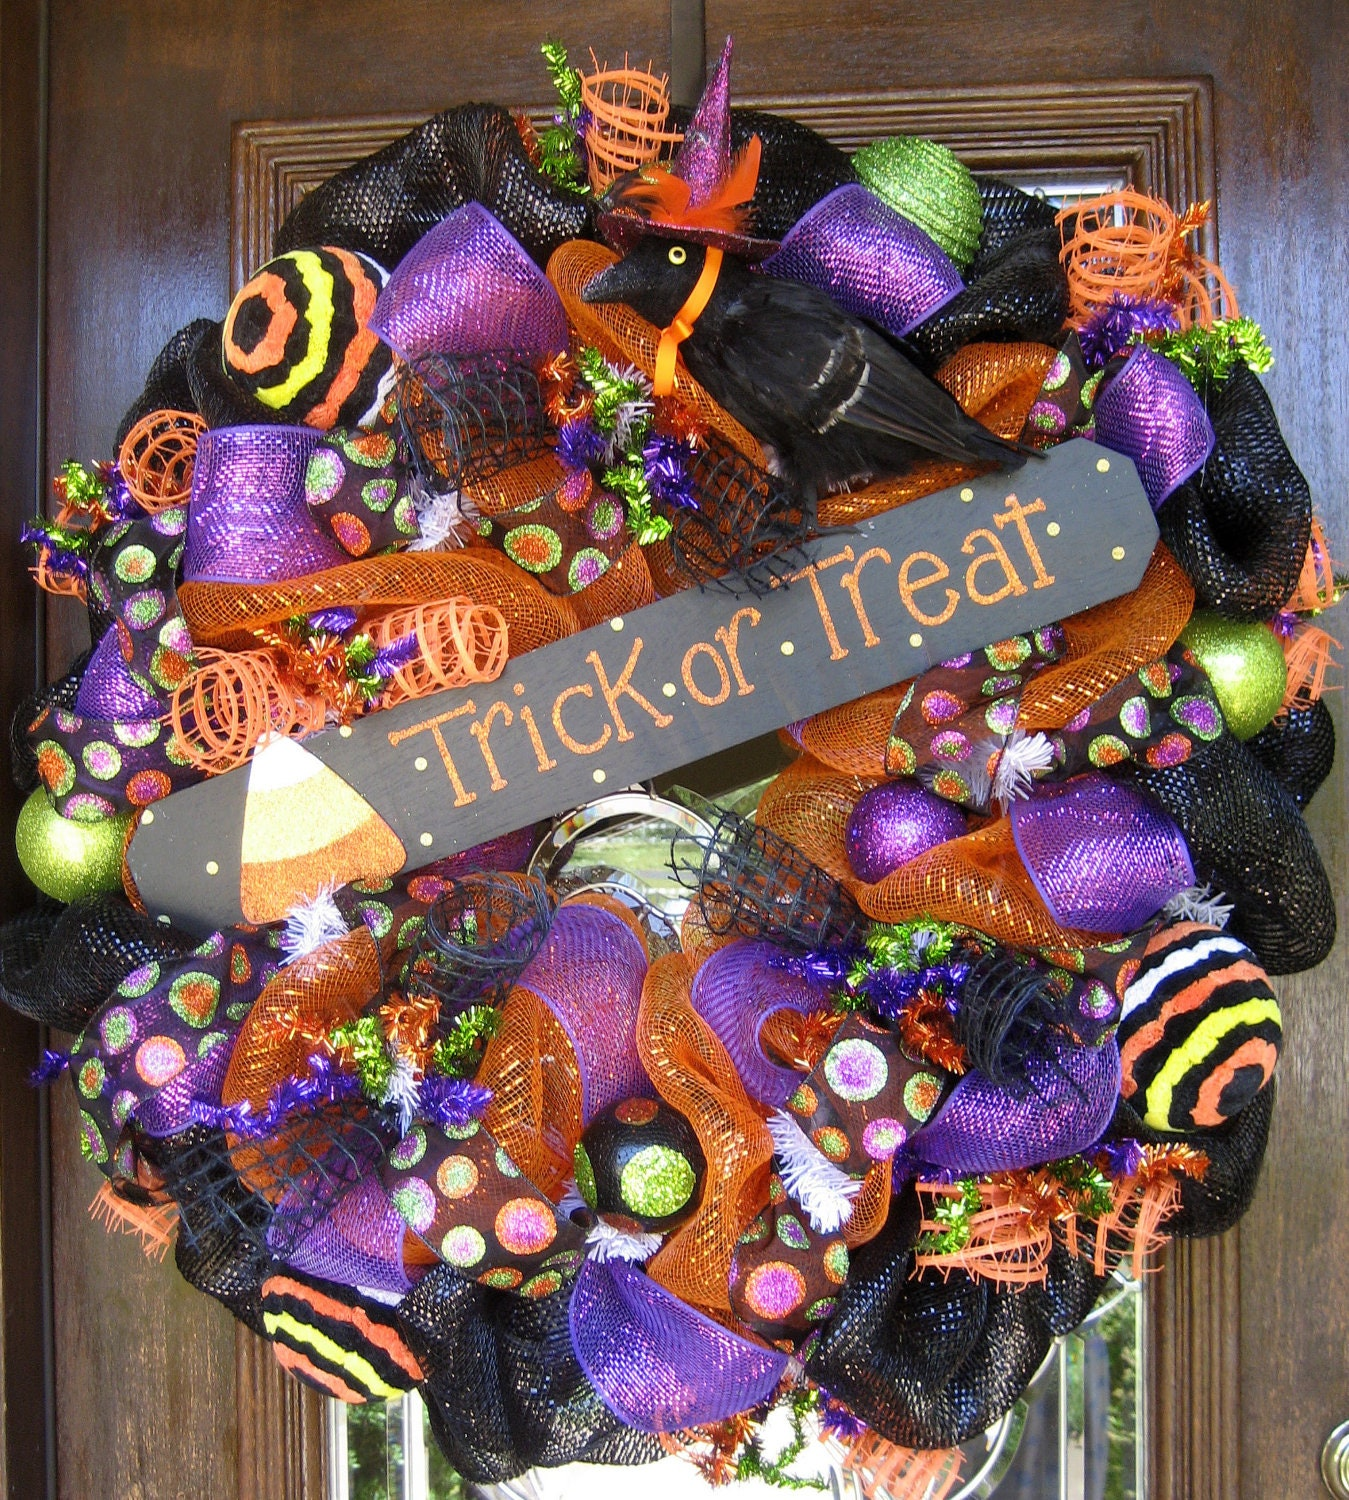 30 deco mesh trick or treat halloween wreath. Black Bedroom Furniture Sets. Home Design Ideas